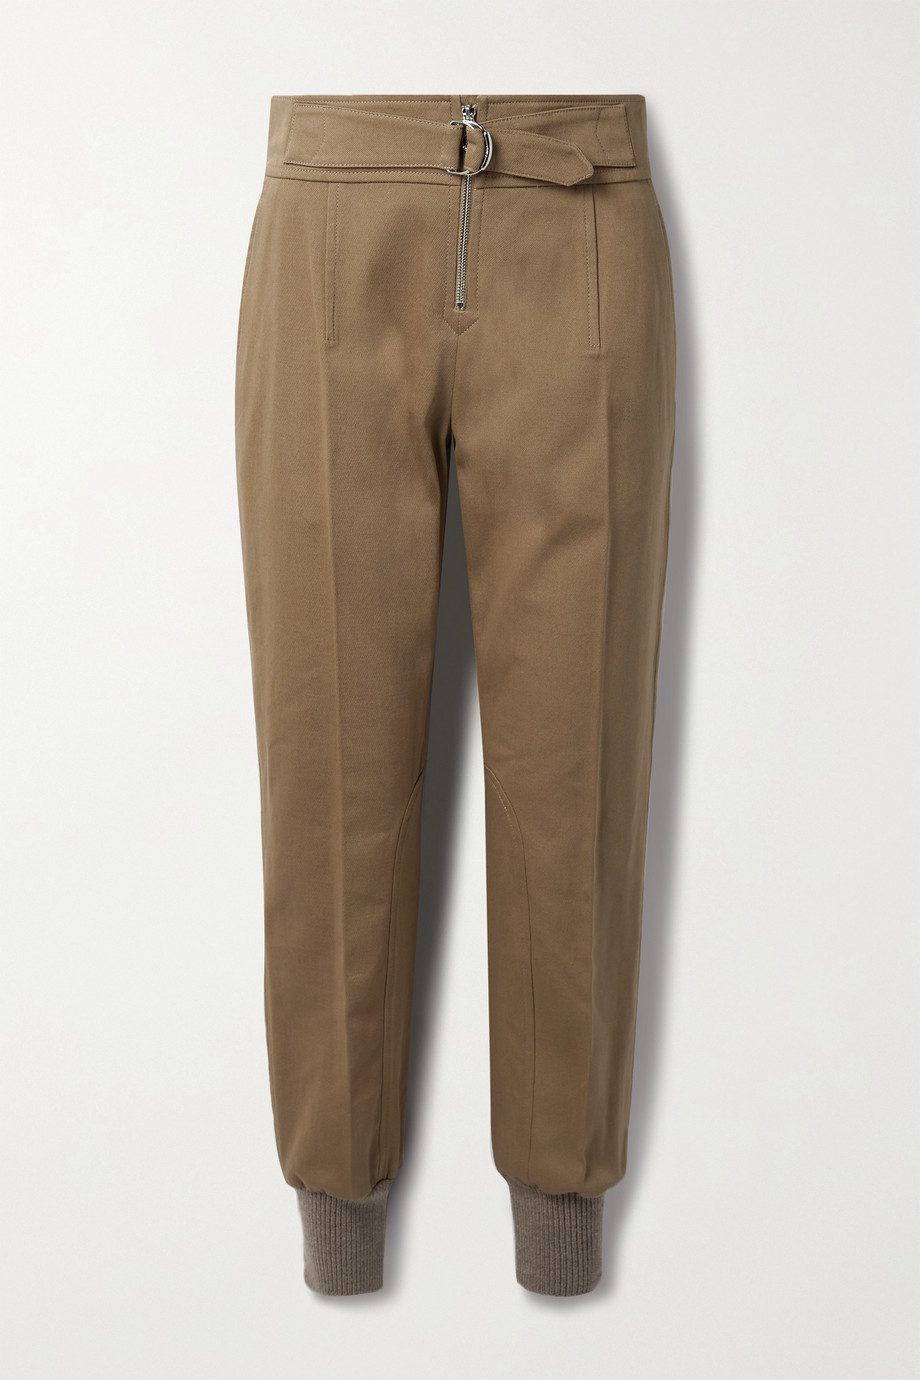 Chloé Belted cotton-drill tapered pants